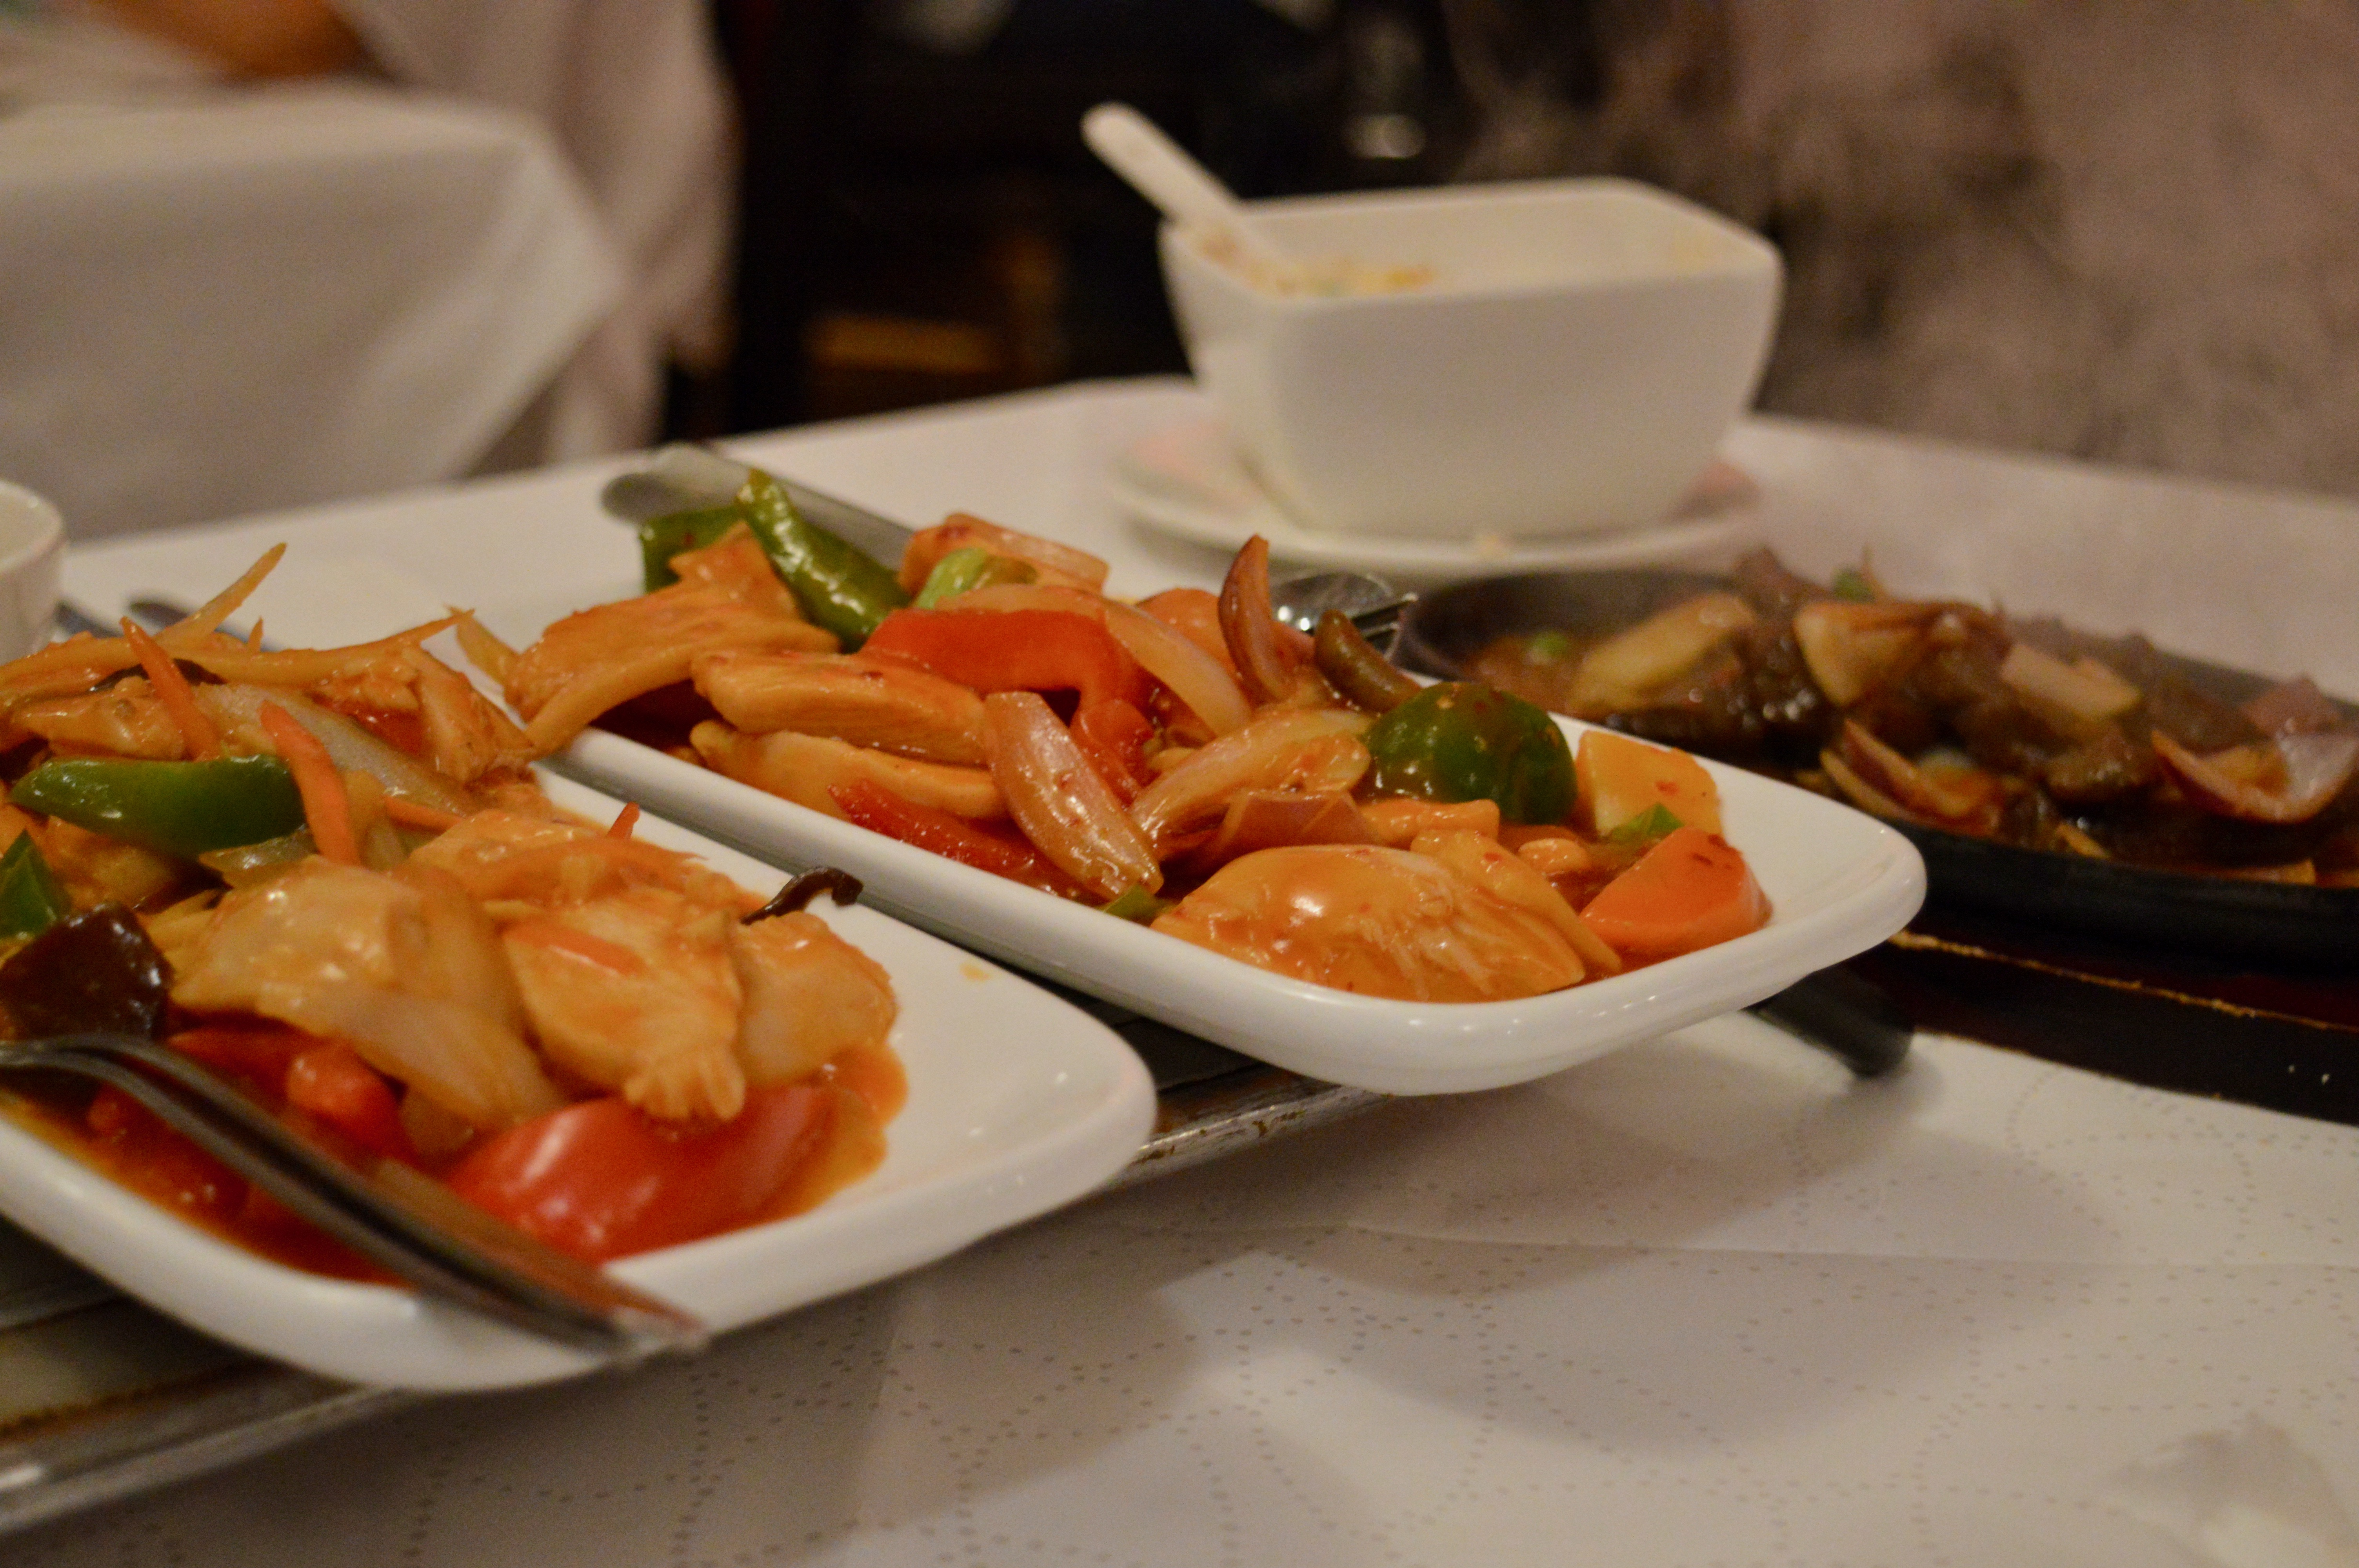 banquet-imperial-gateshead-low-fell-chinese-restaurant-elle-blonde-luxury-lifestyle-destination-blog